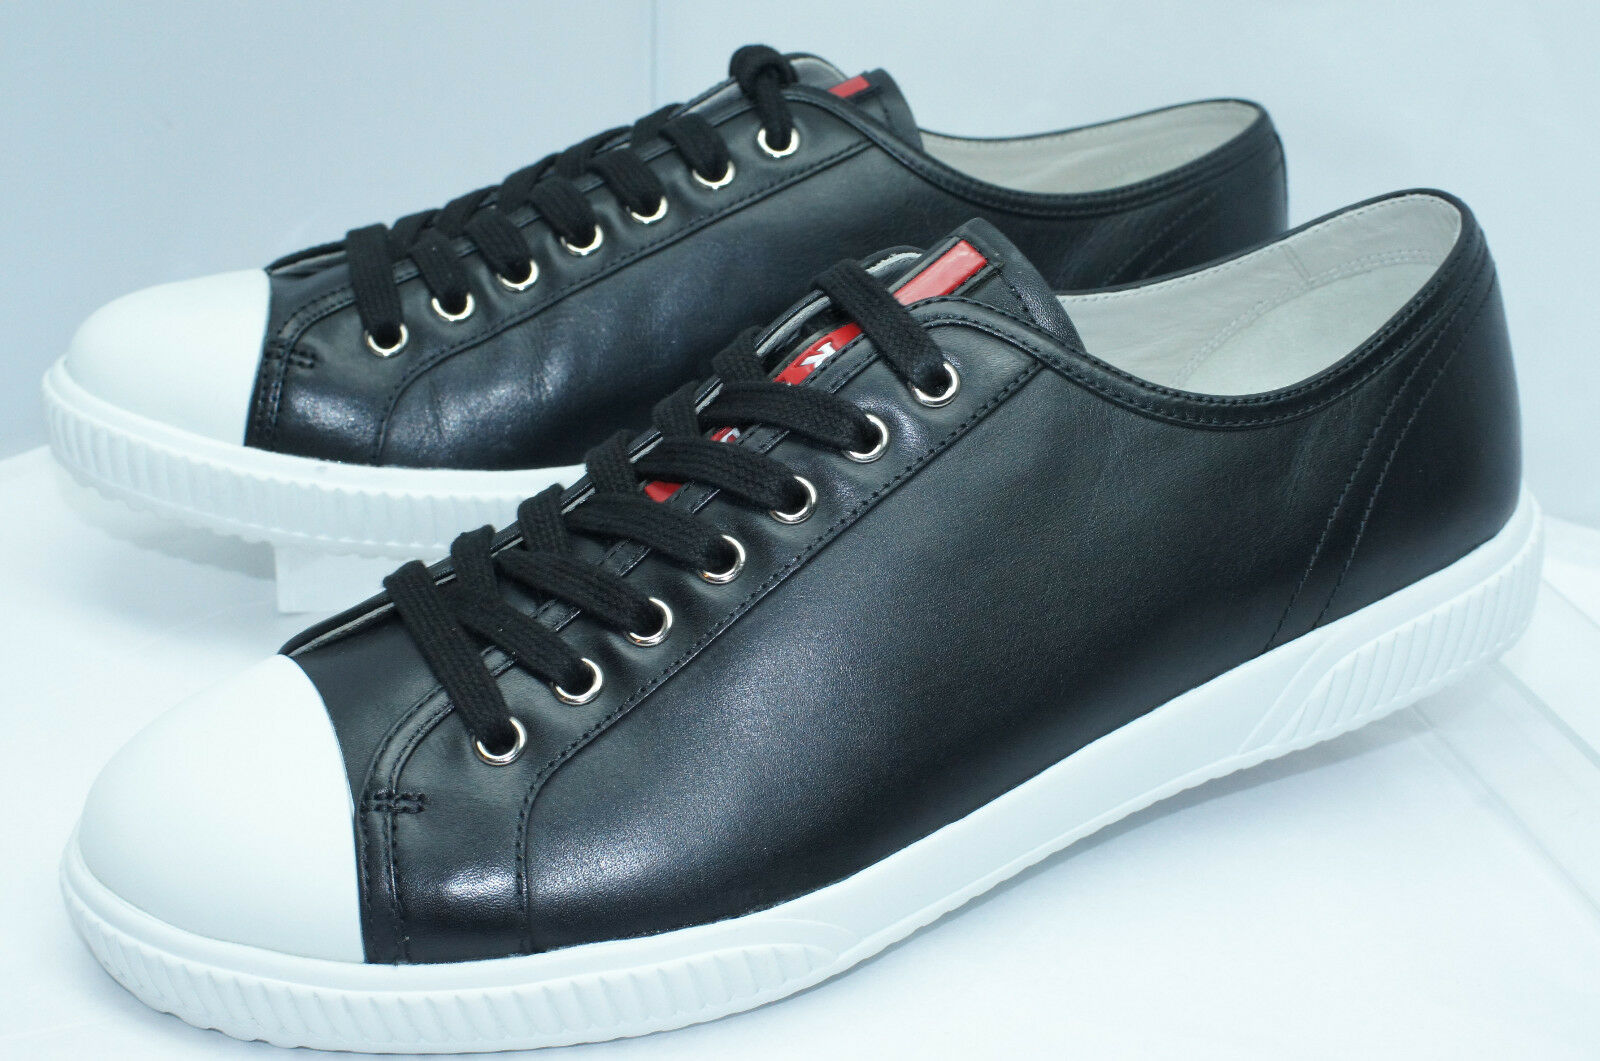 New Prada Men's Tennis shoes Sneakers Size 7 Calzature men Holiday Sale